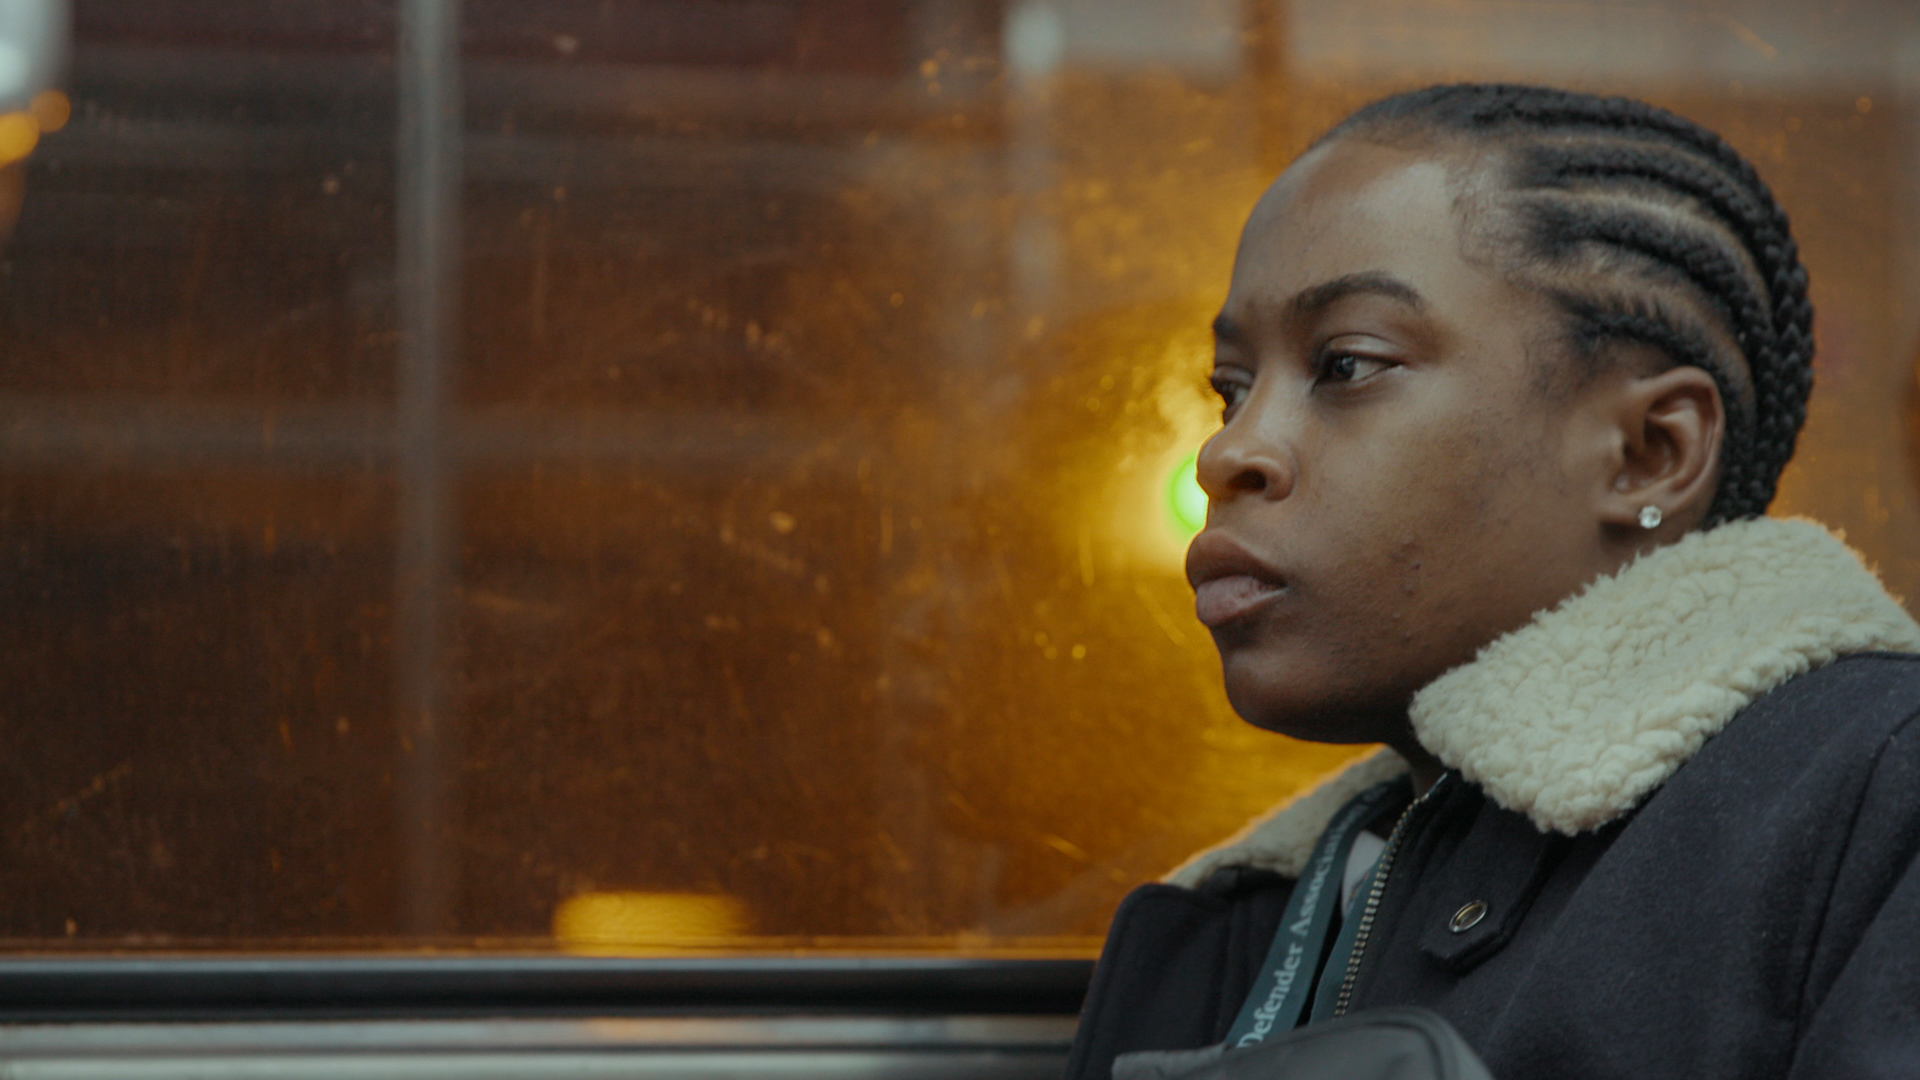 LaTonya Myers riding public transport while lost in thought, in Philly D.A.